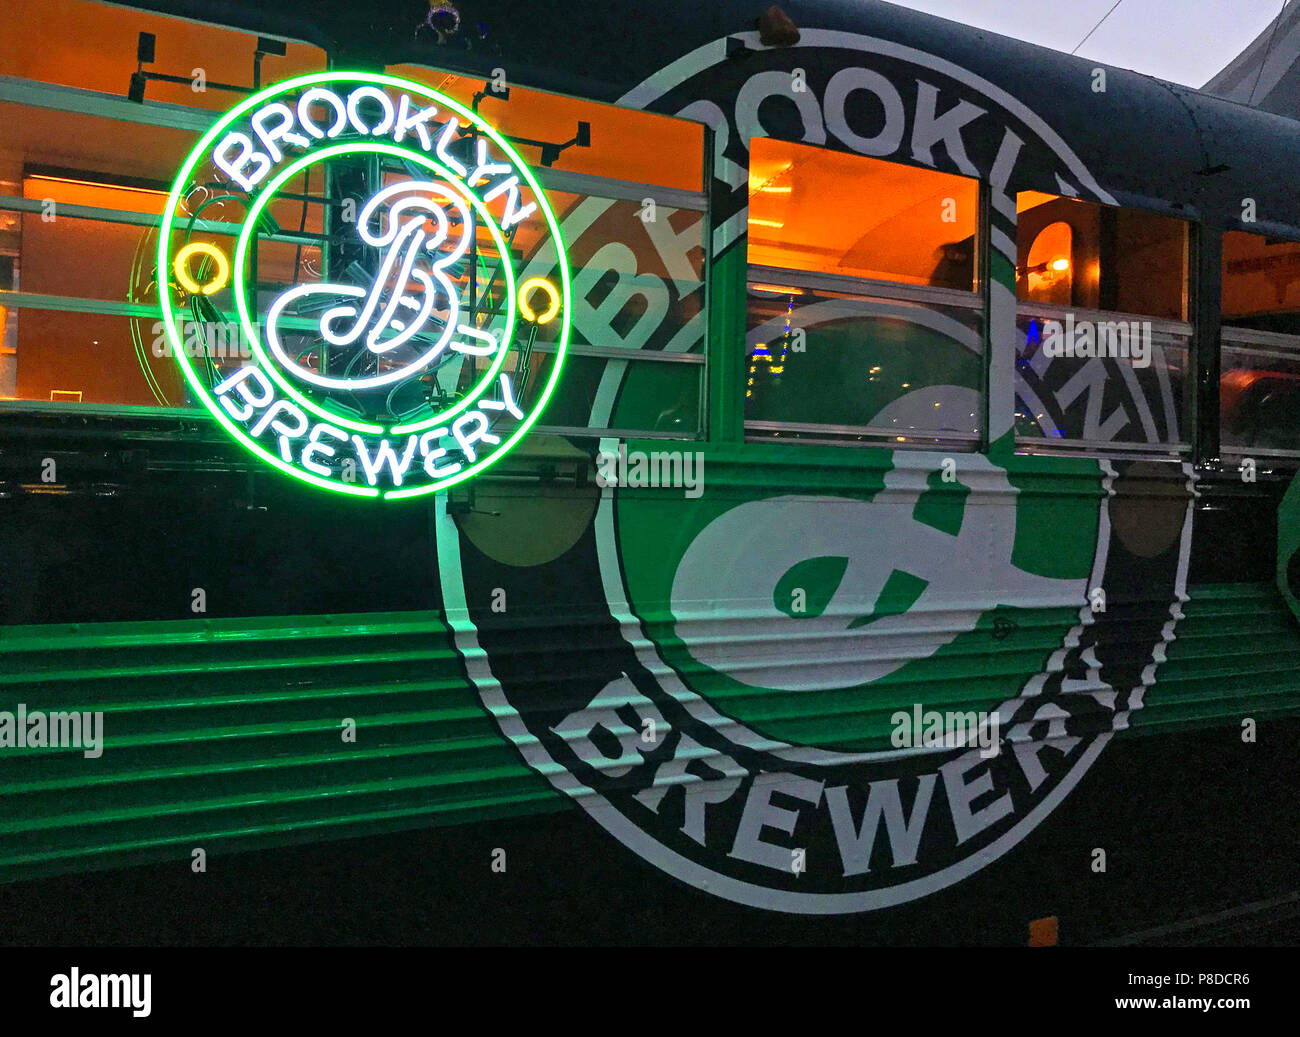 Brooklyn Brewery bus and neon sign, craft beer, Microbrewery, 79 N 11th St, Brooklyn, New York, NY, 11249, USA Stock Photo